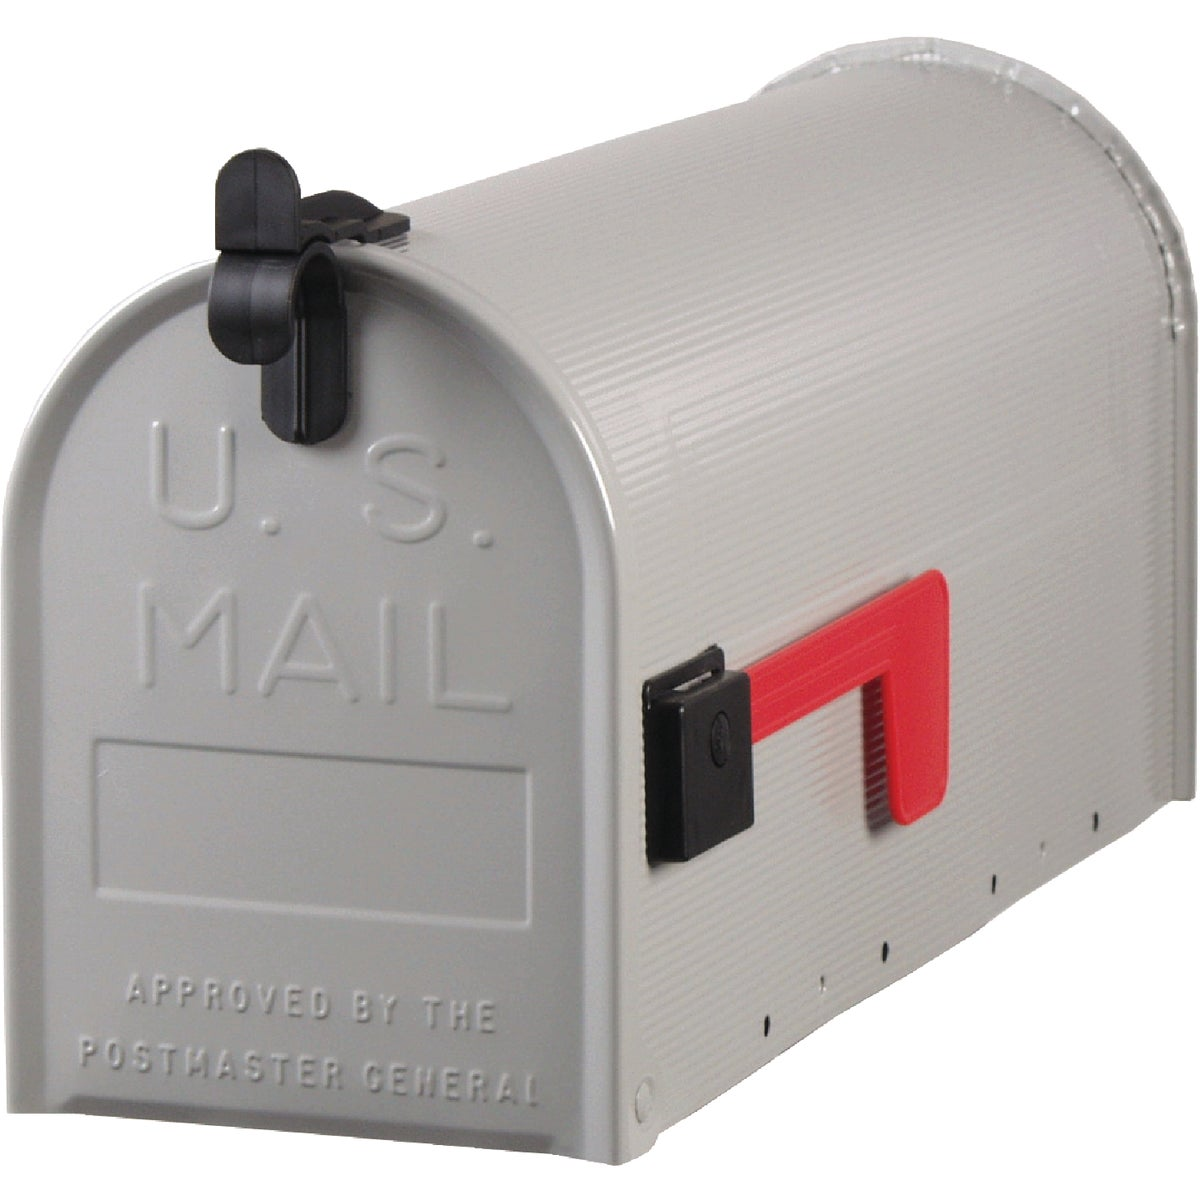 GRAY T1 MAILBOX - ST10 by Solar Group